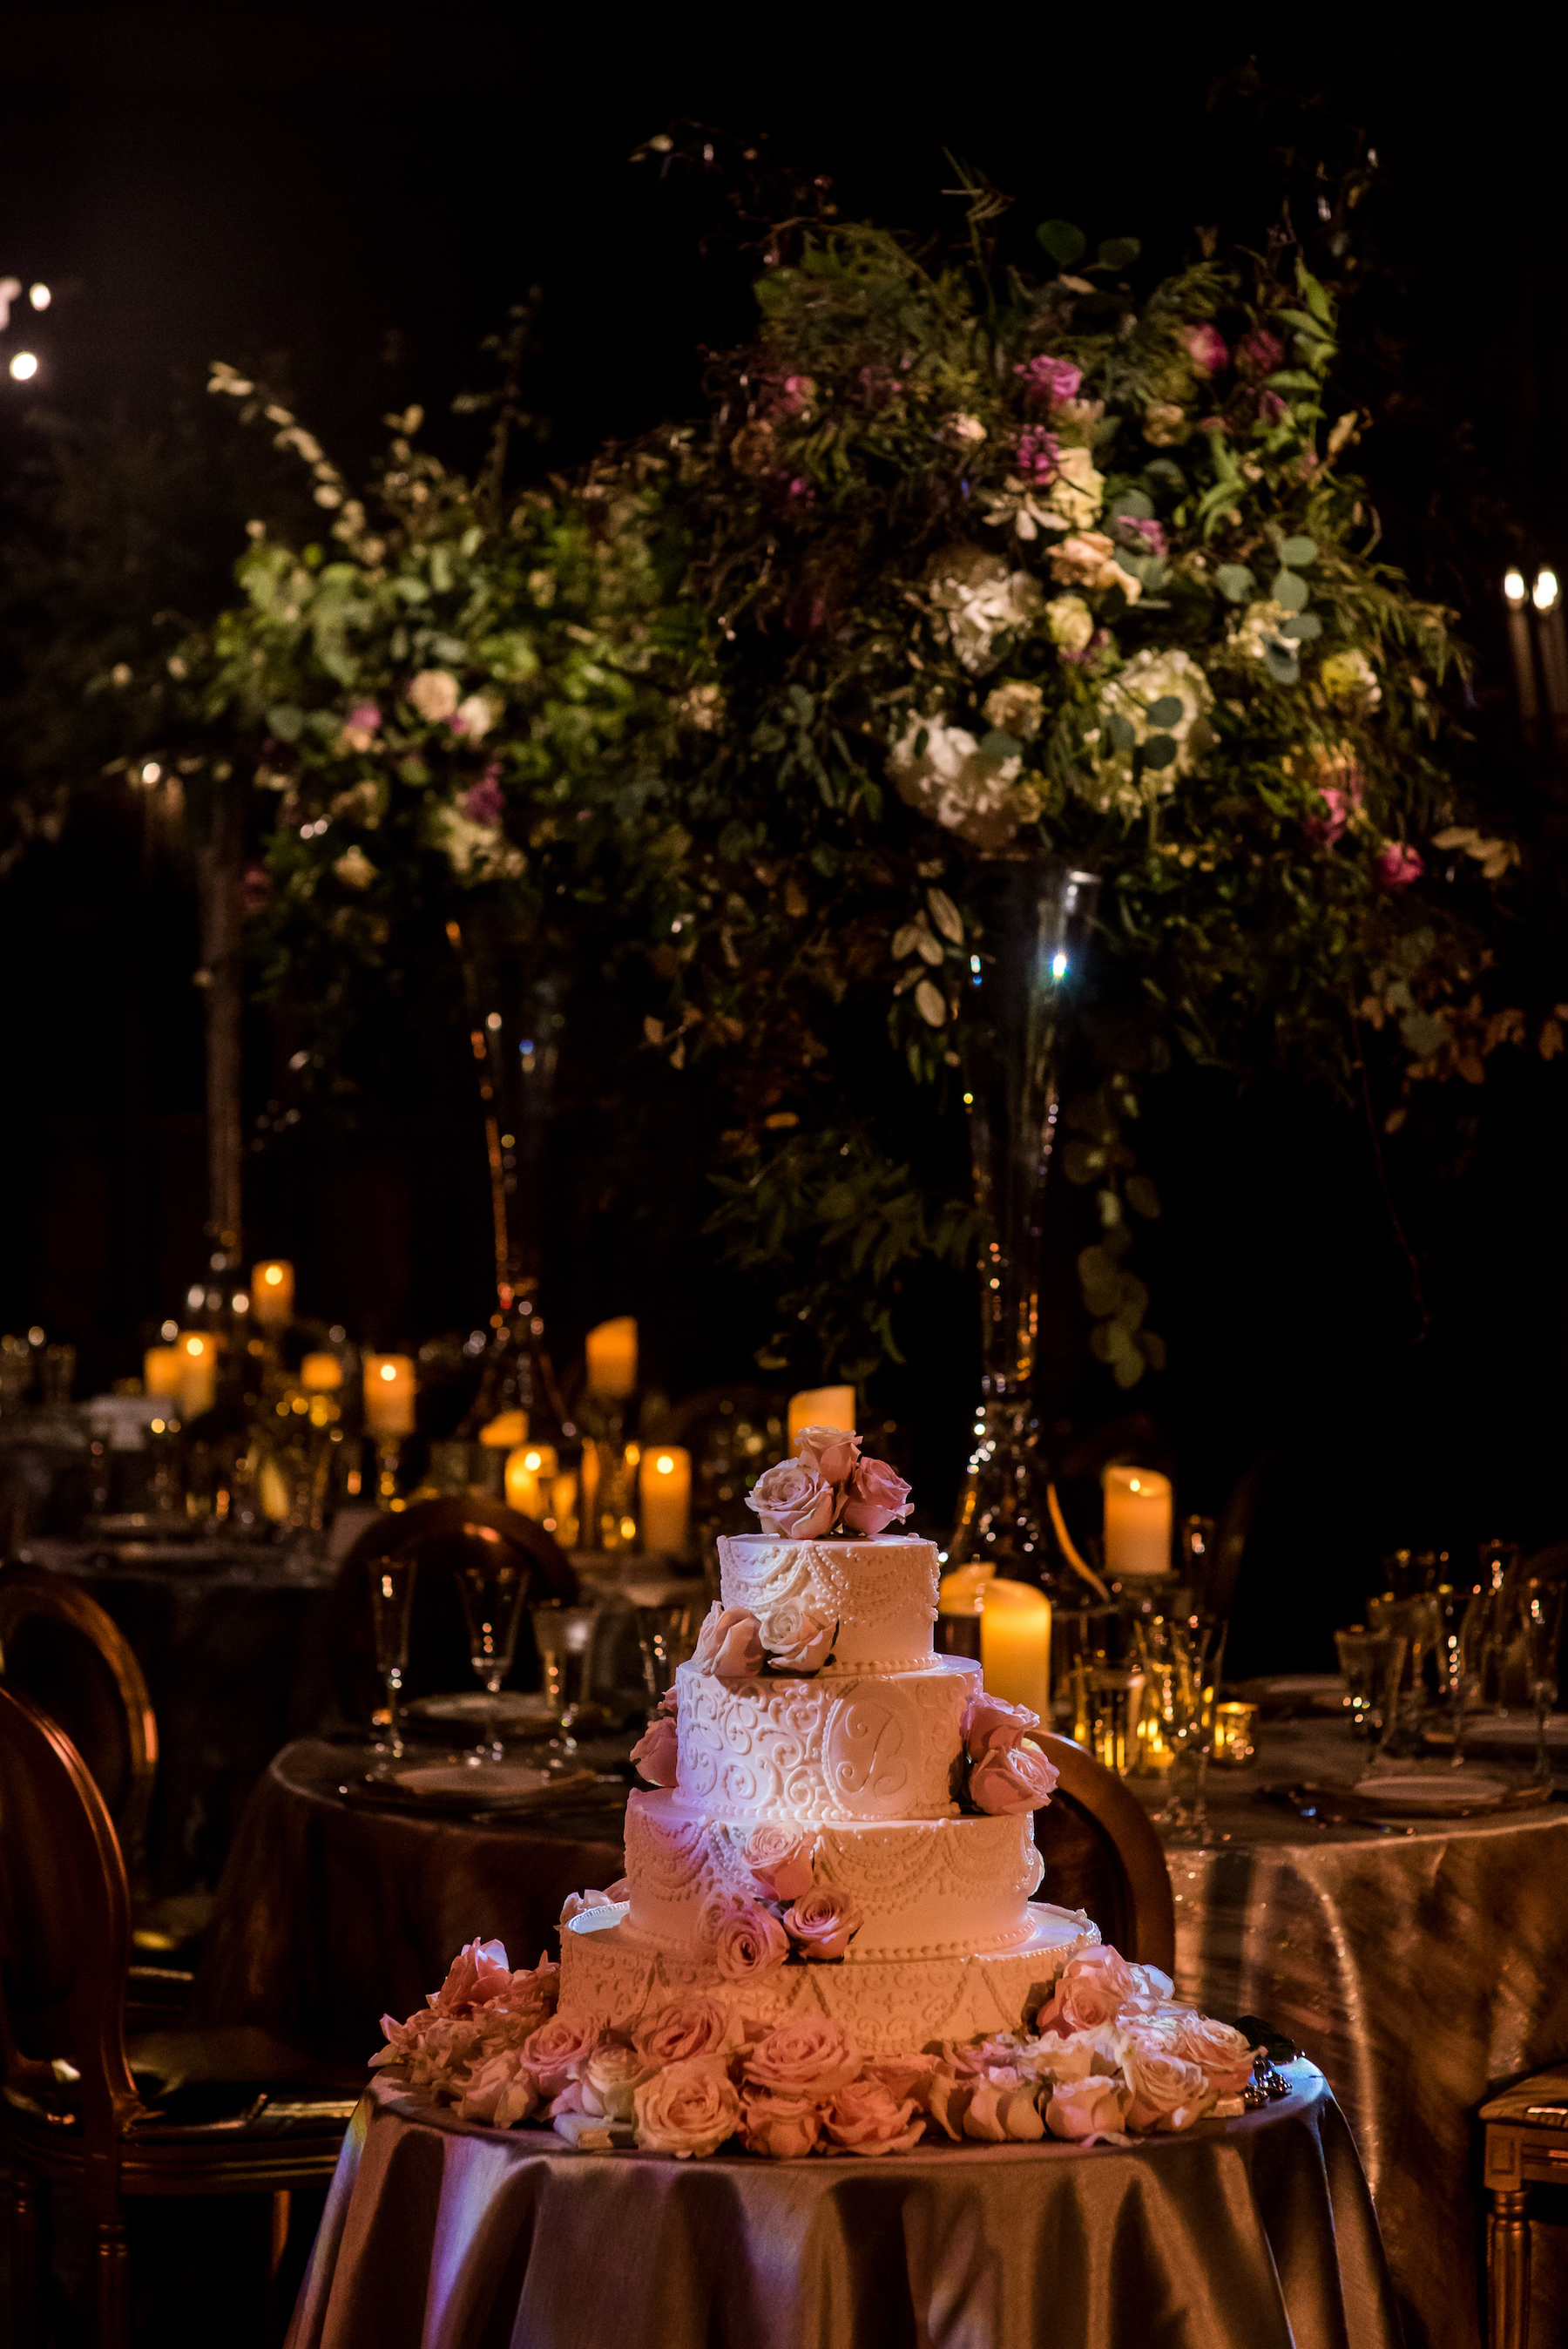 Devin-Dan-Winter-Wedding-Boston- Wedding-Destination-Wedding-Wedding-Planner-Nicole-Simeral-Harvard-Club-Decor-Flowers-Candles-Candlelight-Luxury-wedding-burgundy-purple-gold-faux-candles-cake